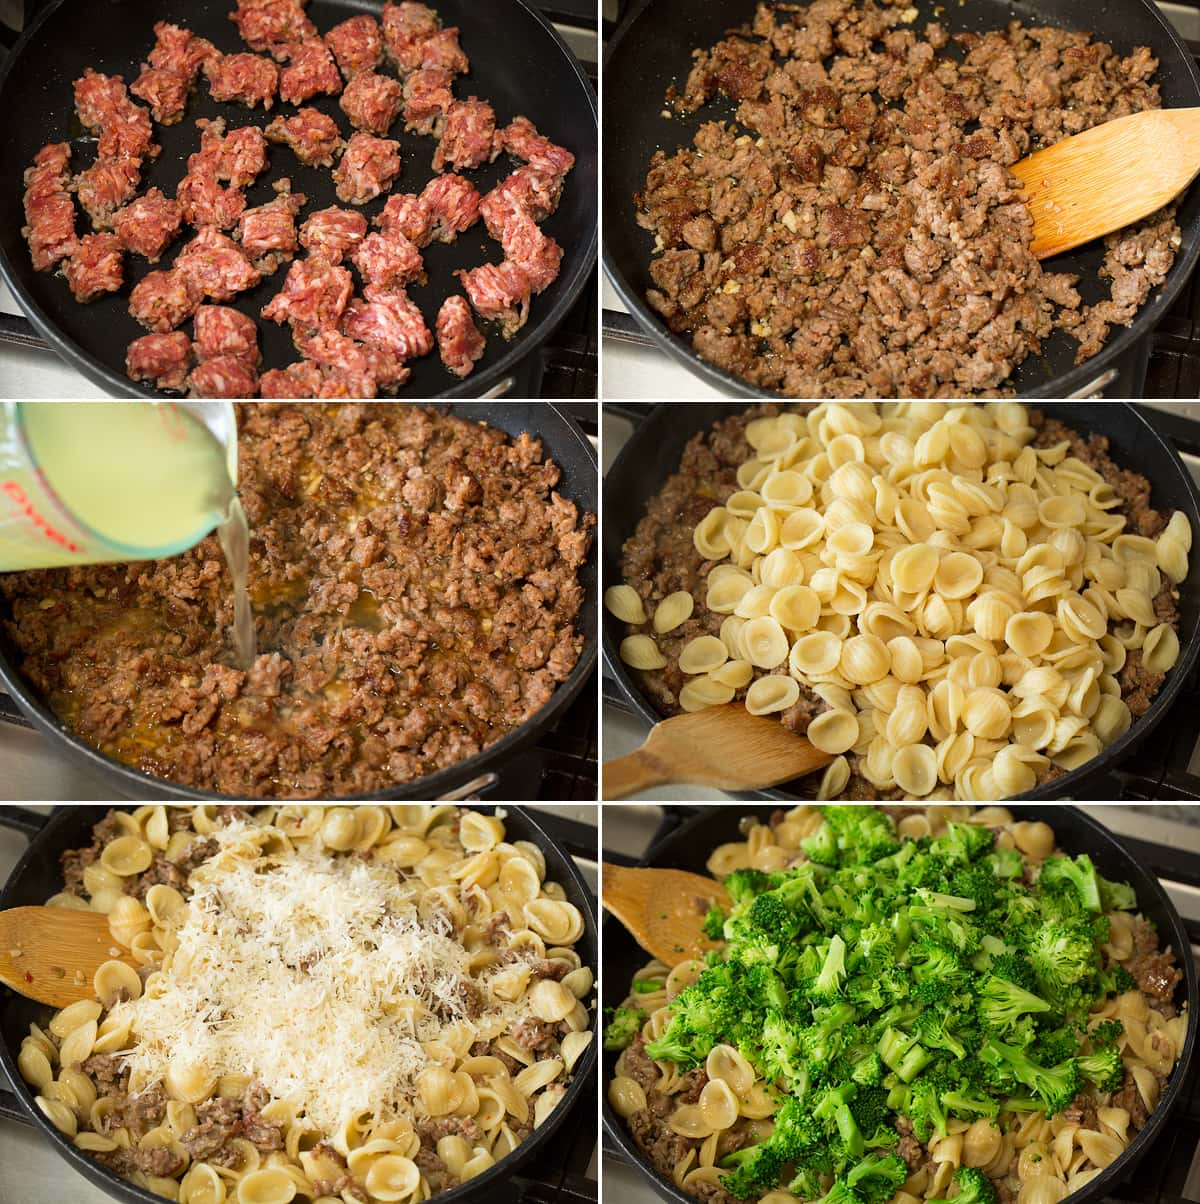 Photo: Collage of six images showing how to finish making orecchiette pasta recipe. Includes browning sausage in skillet, adding pasta water, adding cooked pasta, then parmesan and broccoli.